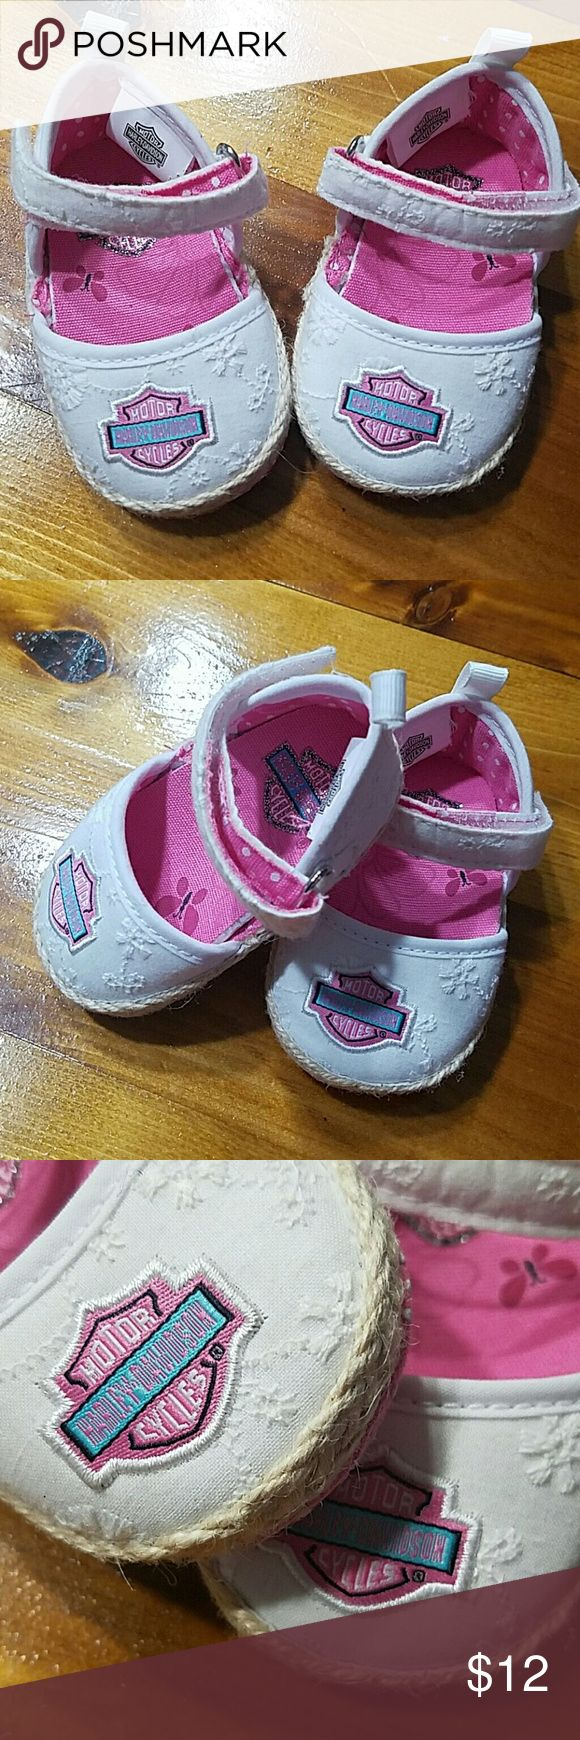 Baby girl harley Davidson shoes Harley Davidson shoes are white with a floral design stitched in also have the harley design in pink, velcro tie. Size 0/1 Shoes Slippers